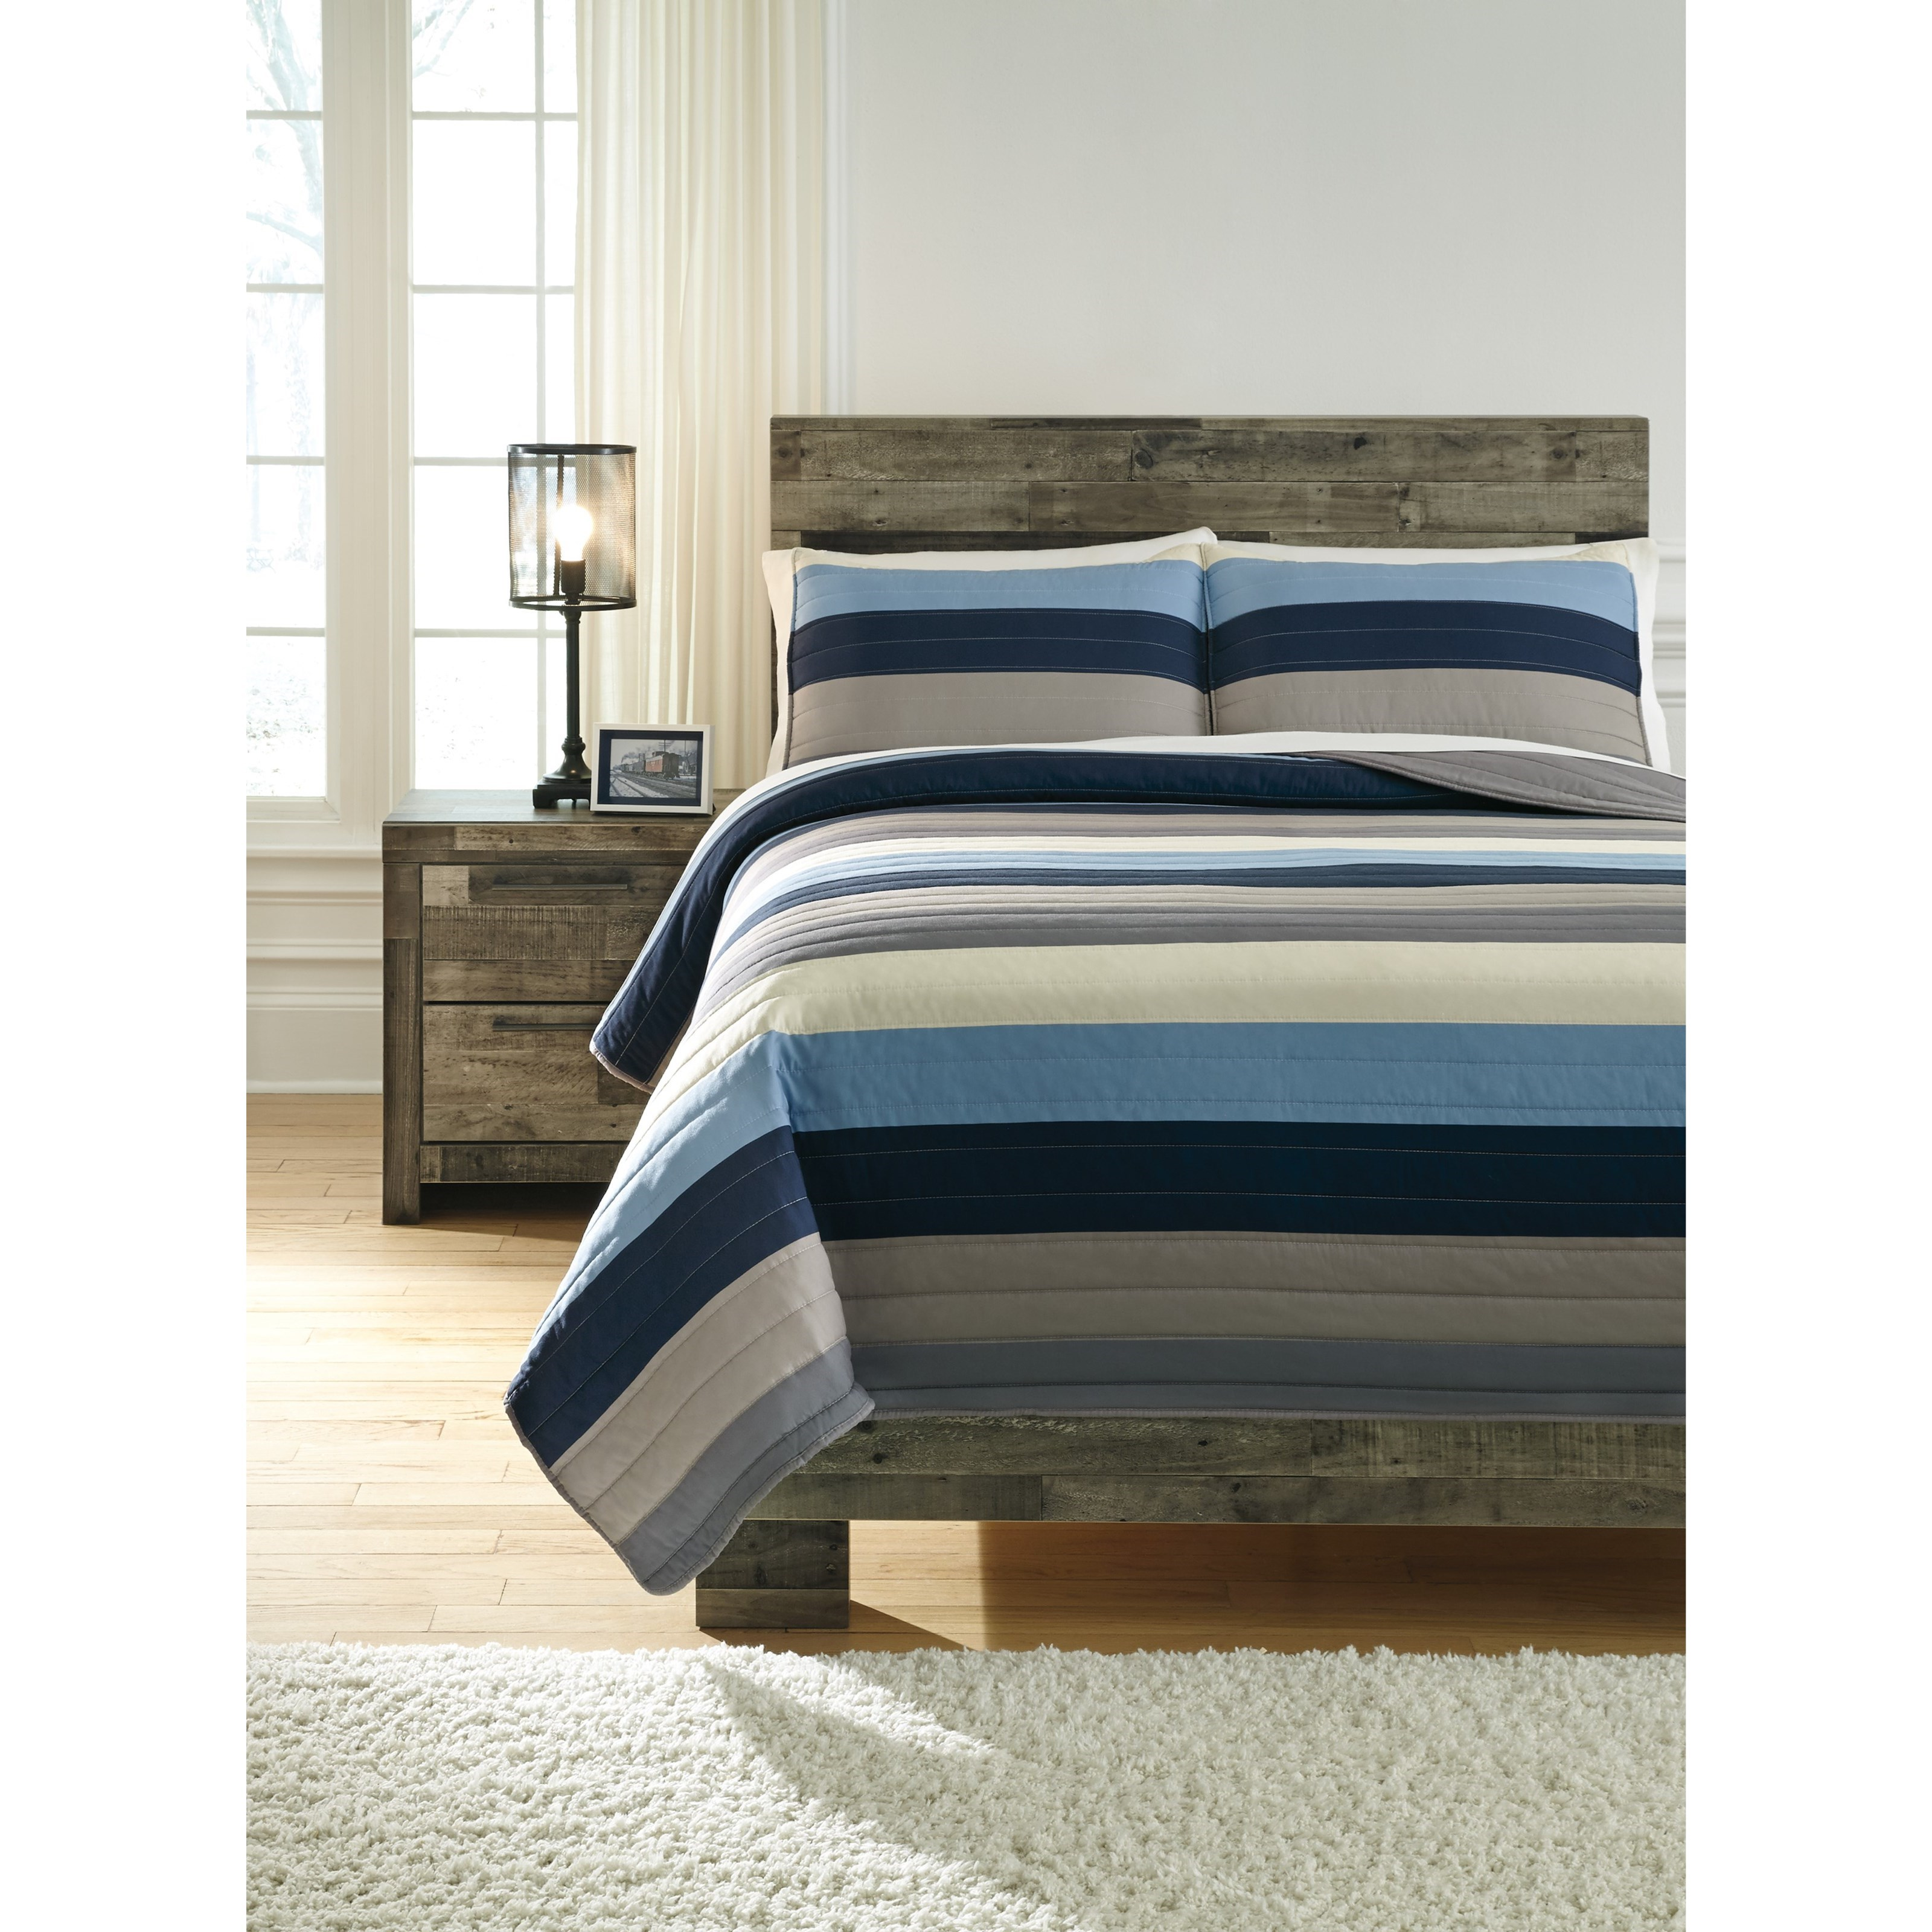 Full Winifred Blue/Gray/Tan Bedding Set